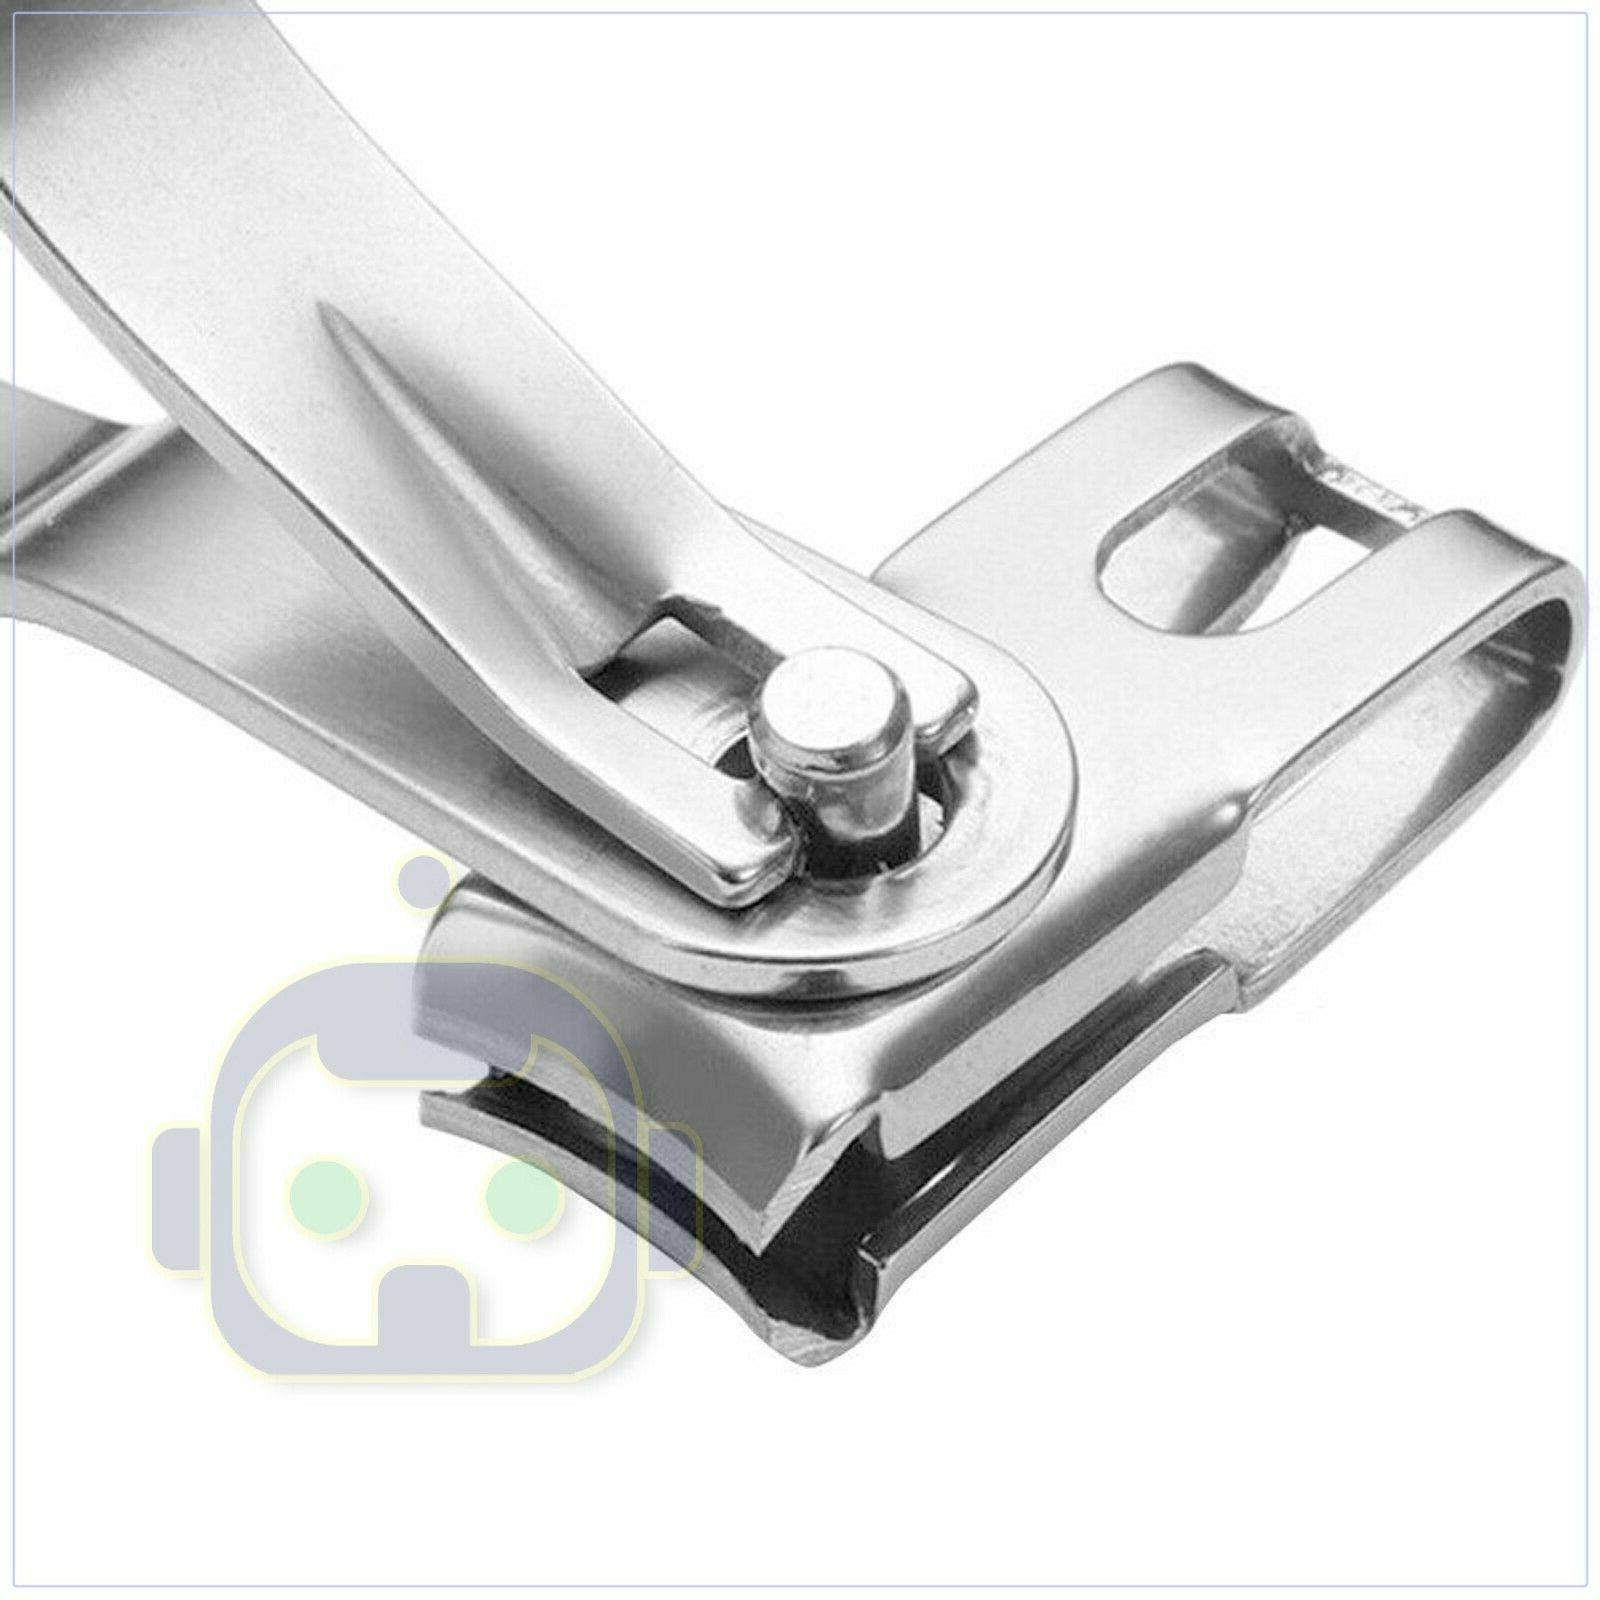 Adjustable Clippers Ingrown Toe Nails Duty